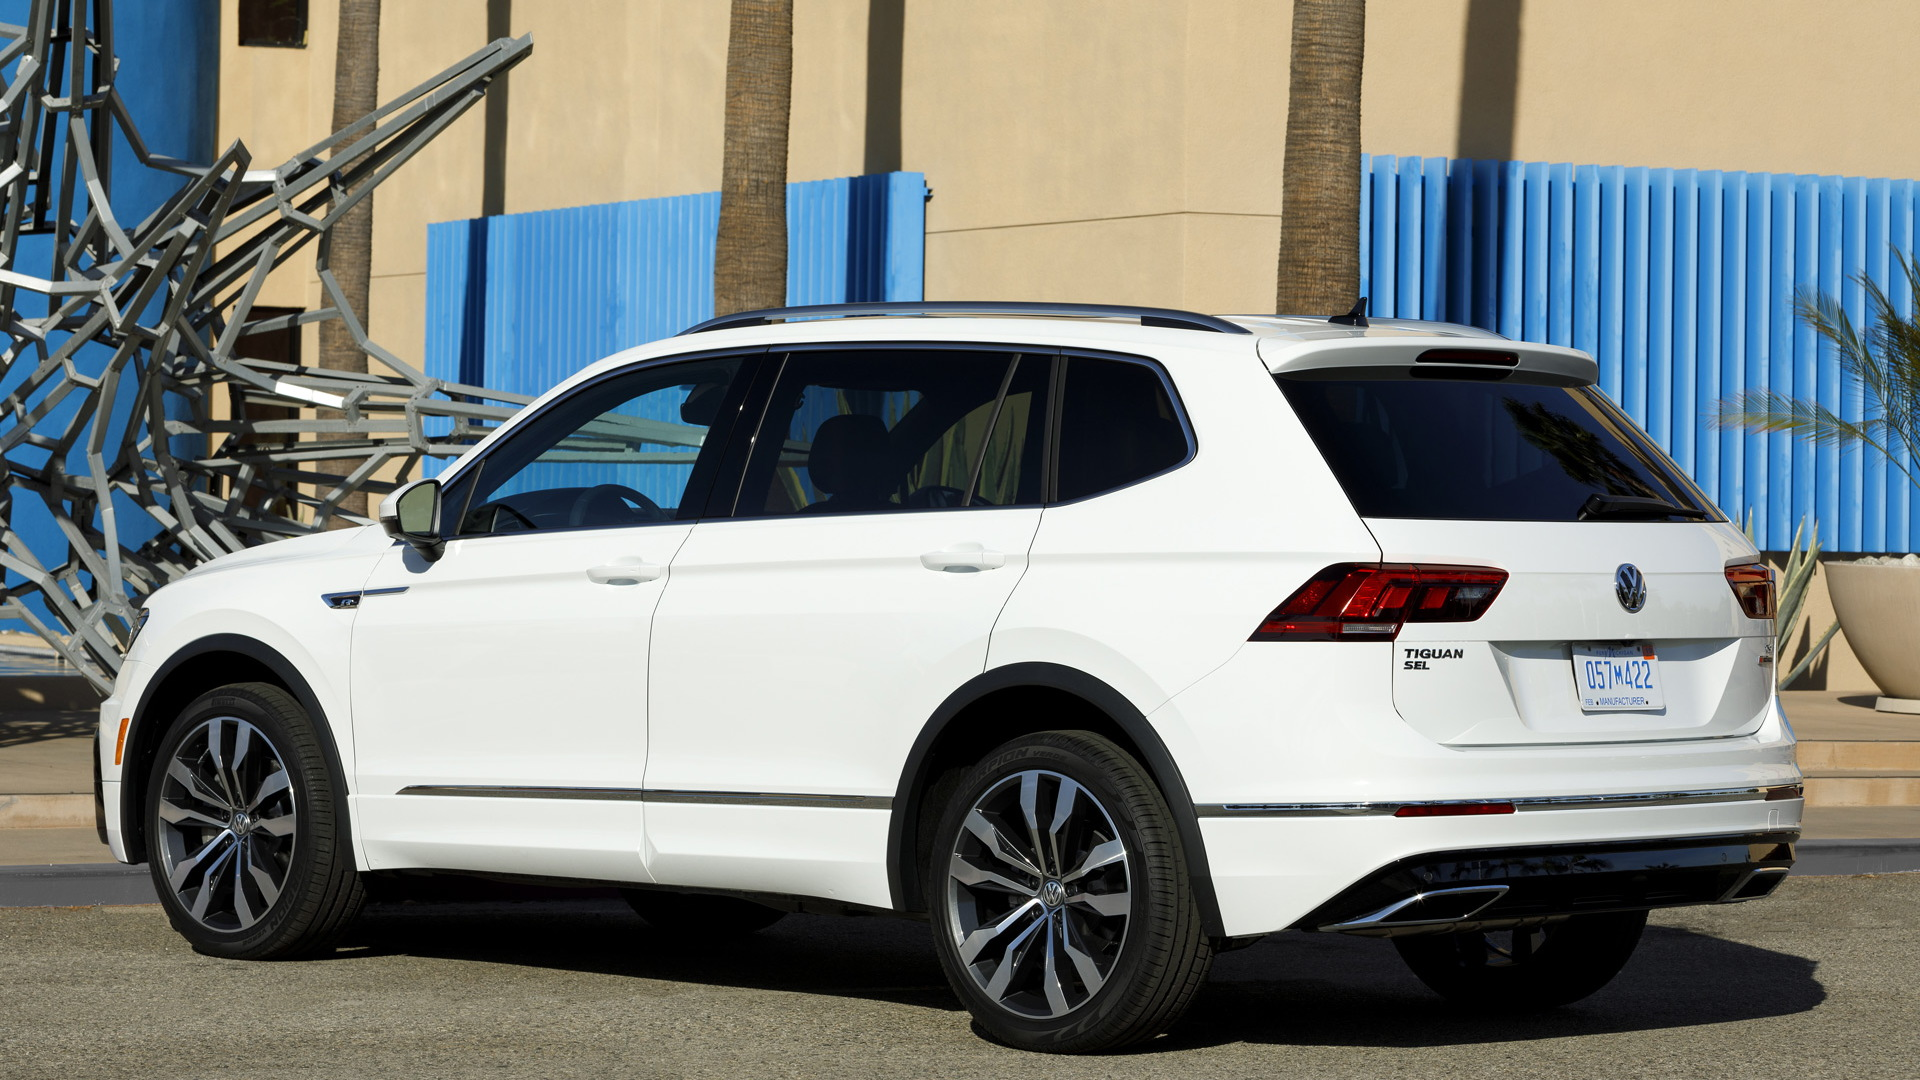 2021 VW Tiguan R-Line – Release Date, Price And Photos >> 2018 Volkswagen Tiguan R Line Adds Style And Spice For A Reasonable